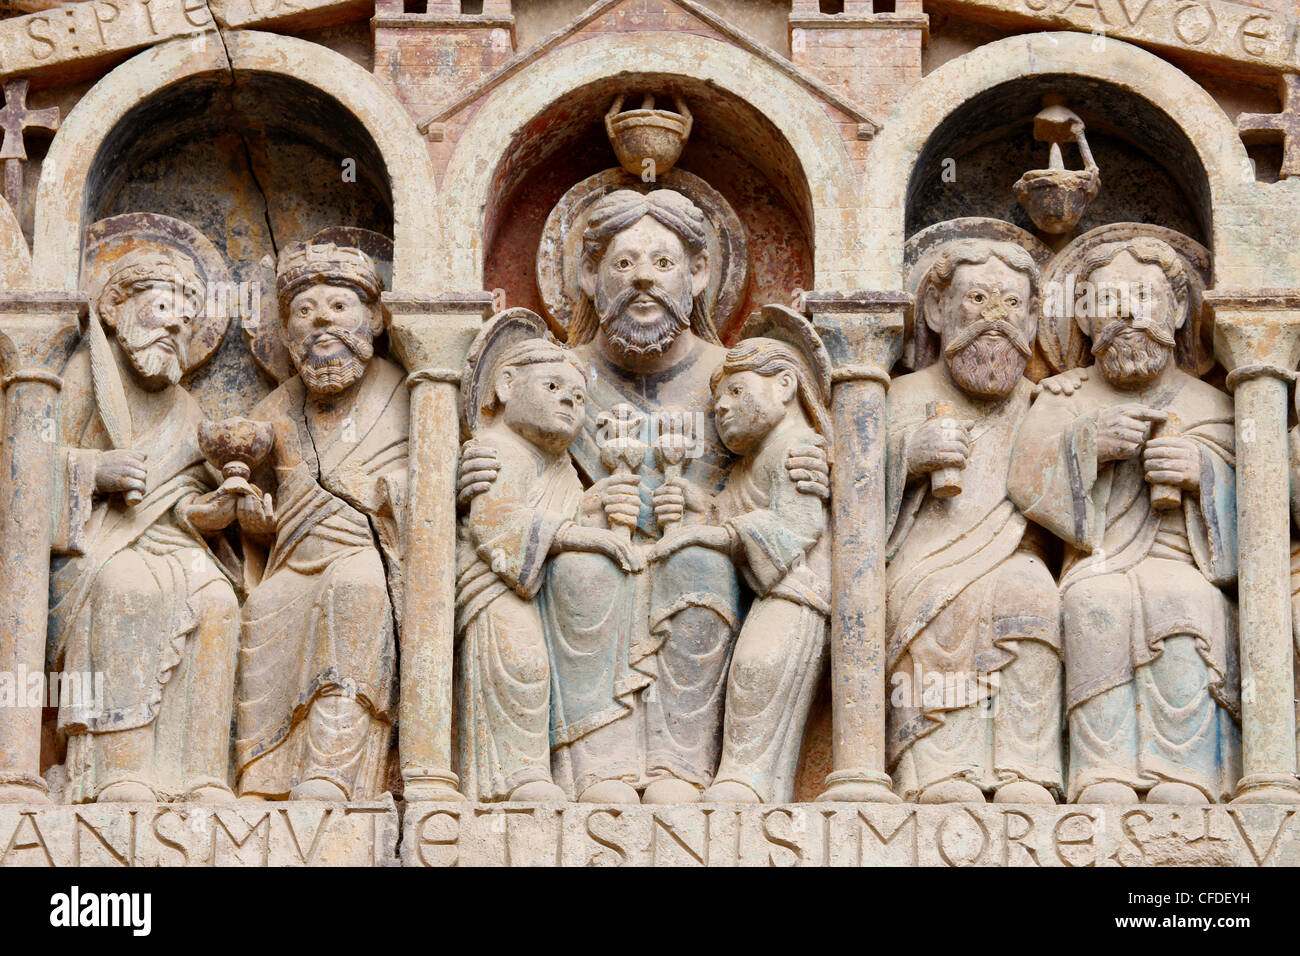 Tympanum showing Abraham, Sainte Foy Abbey church, Conques, Aveyron, Massif Central, France, Europe - Stock Image